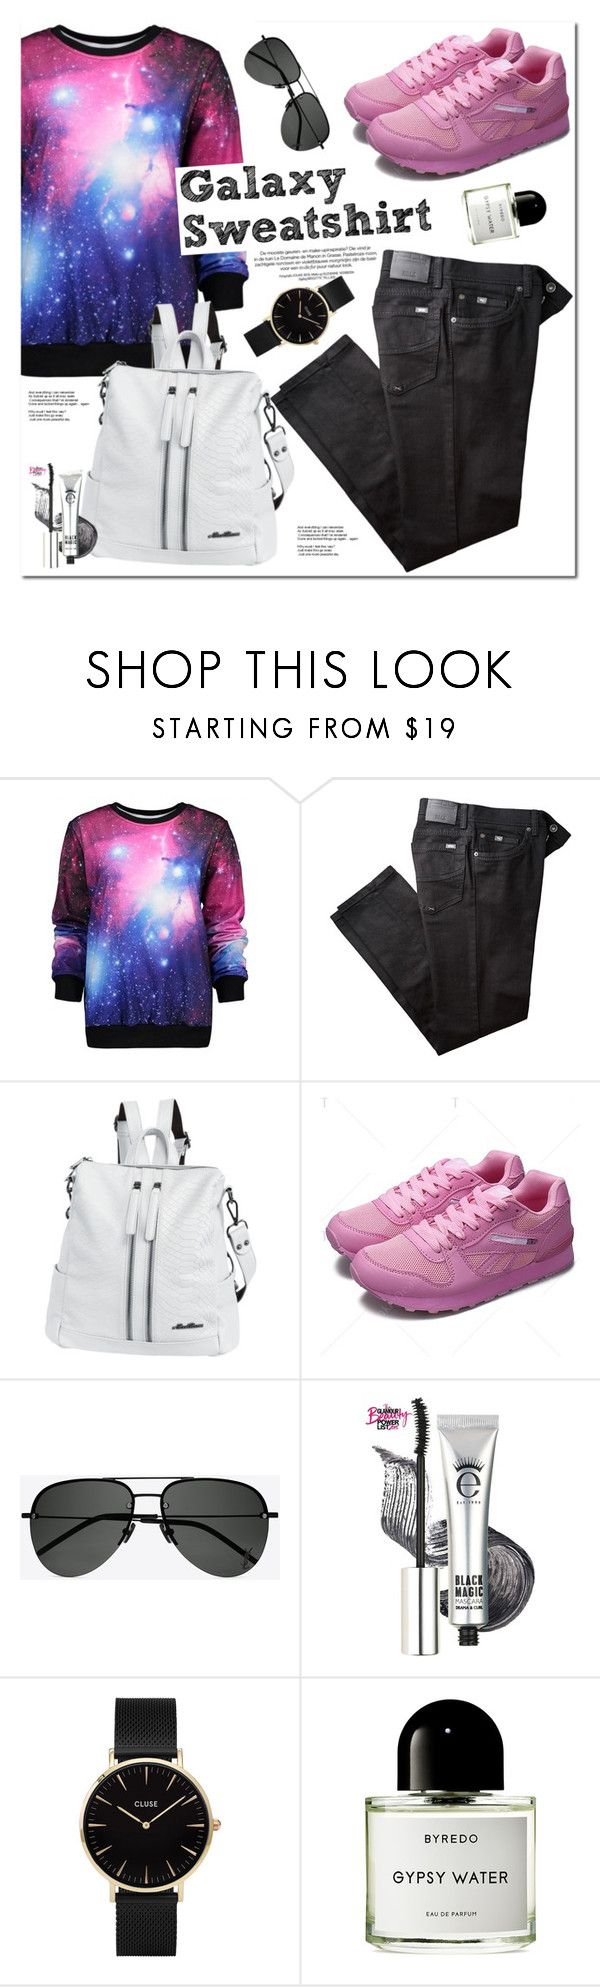 """Galaxy Sweatshirt"" by oshint ❤ liked on Polyvore featuring BRAX, Yves Saint Laurent, CLUSE, Byredo, awesome, amazing, cool, fabulous and twinkledeals"